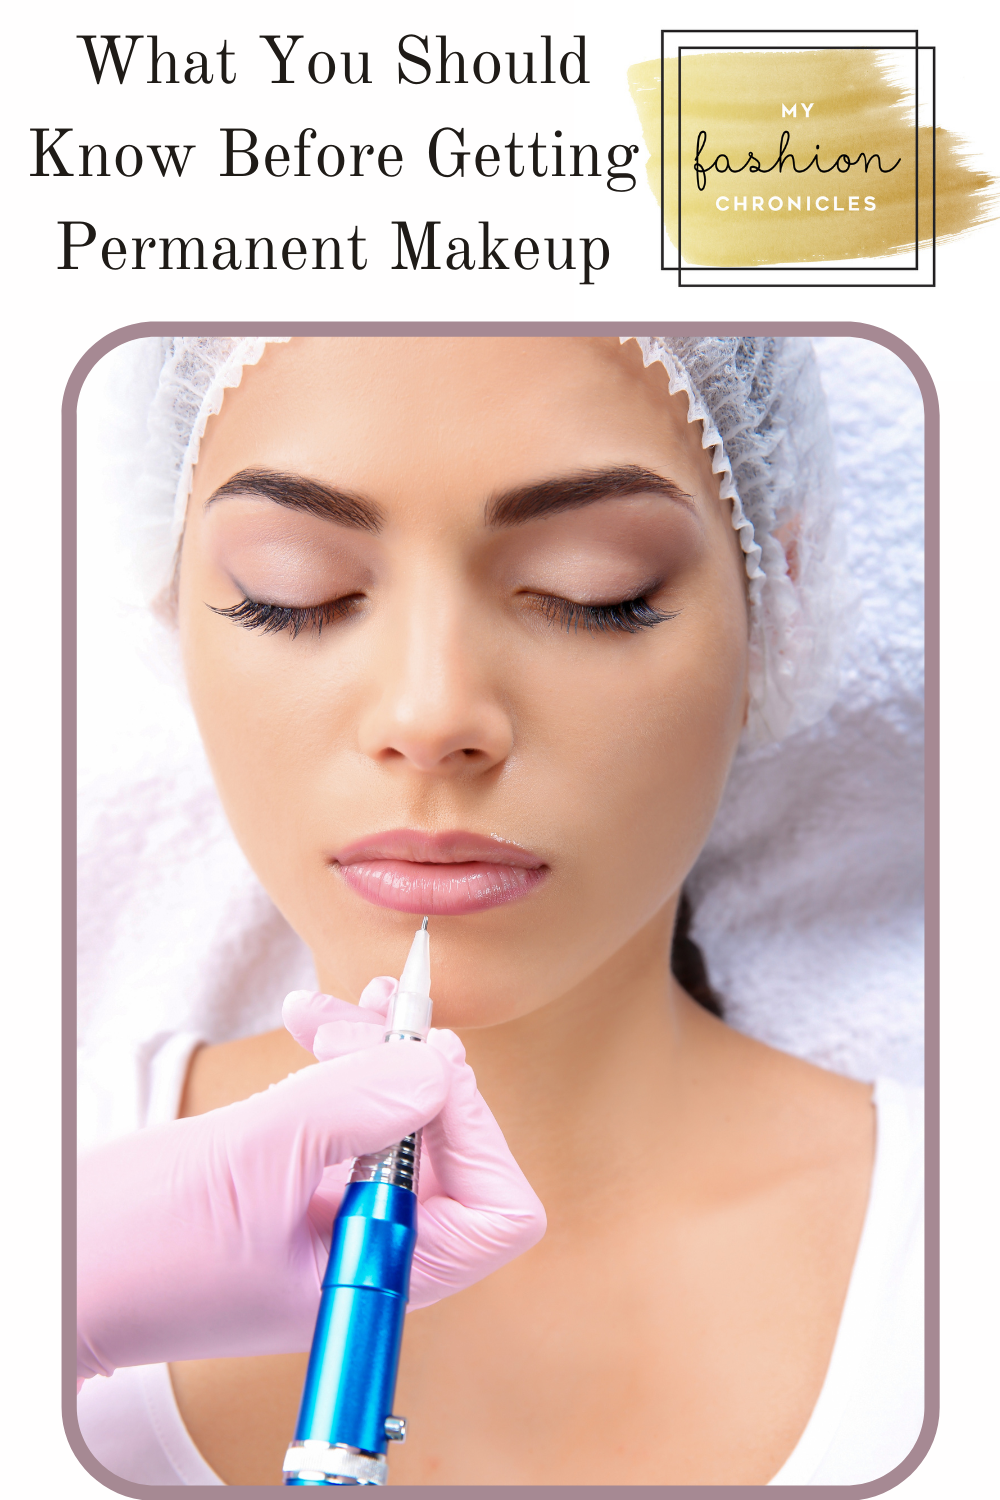 Myfashionchronicles.com is the best place to find tips to always look your best. Stop wasting time in the morning doing your makeup! Find out everything you need to know about permanent makeup now!